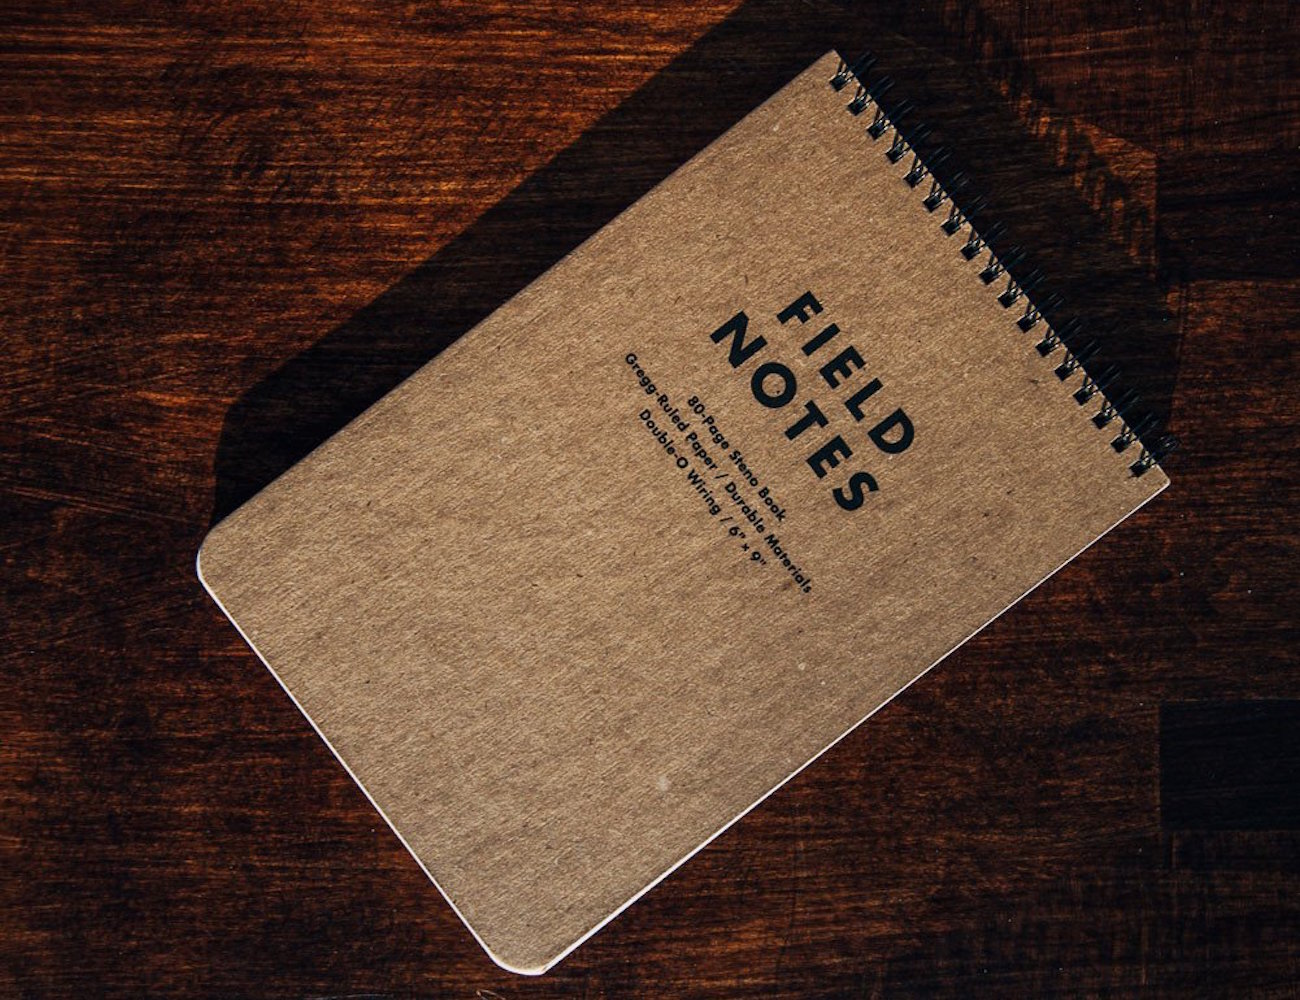 Field+Notes+Steno+Book+By+Lord+And+Lady+Co.